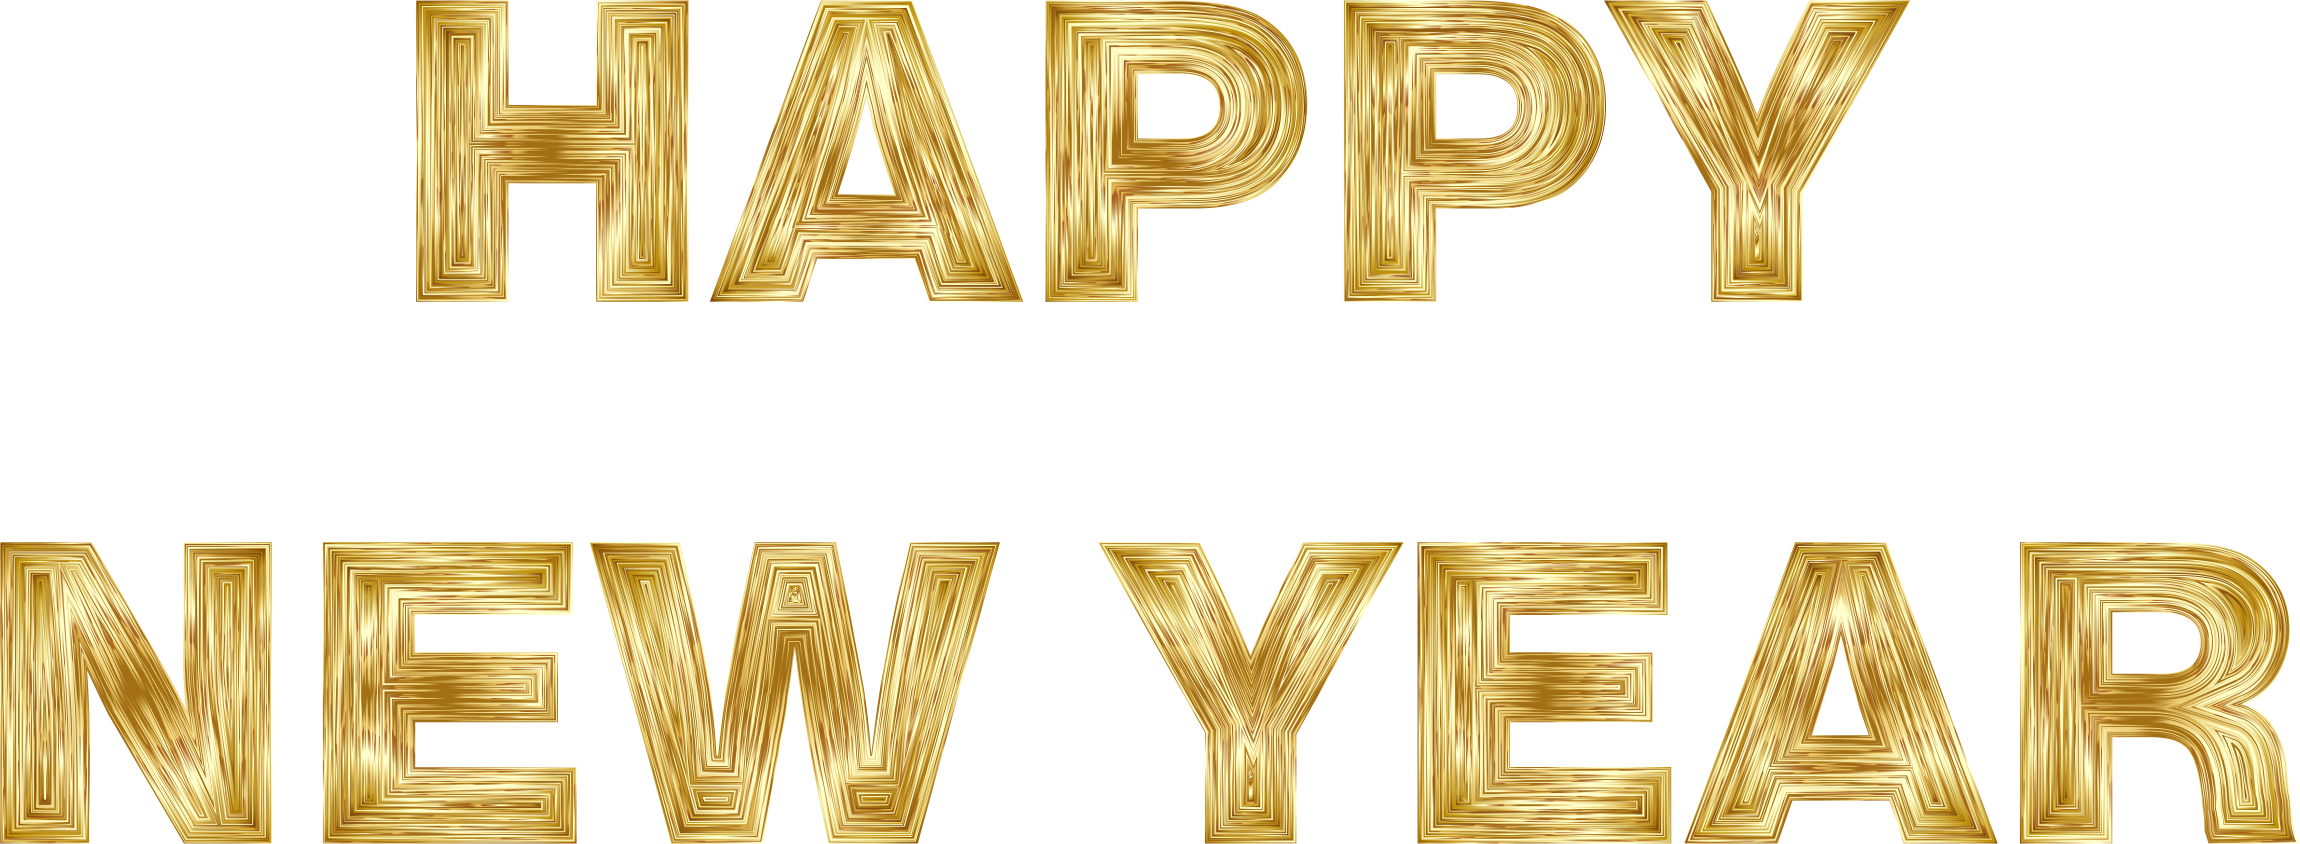 gold clipart new years eve gold new years eve transparent free for download on webstockreview 2020 gold clipart new years eve gold new